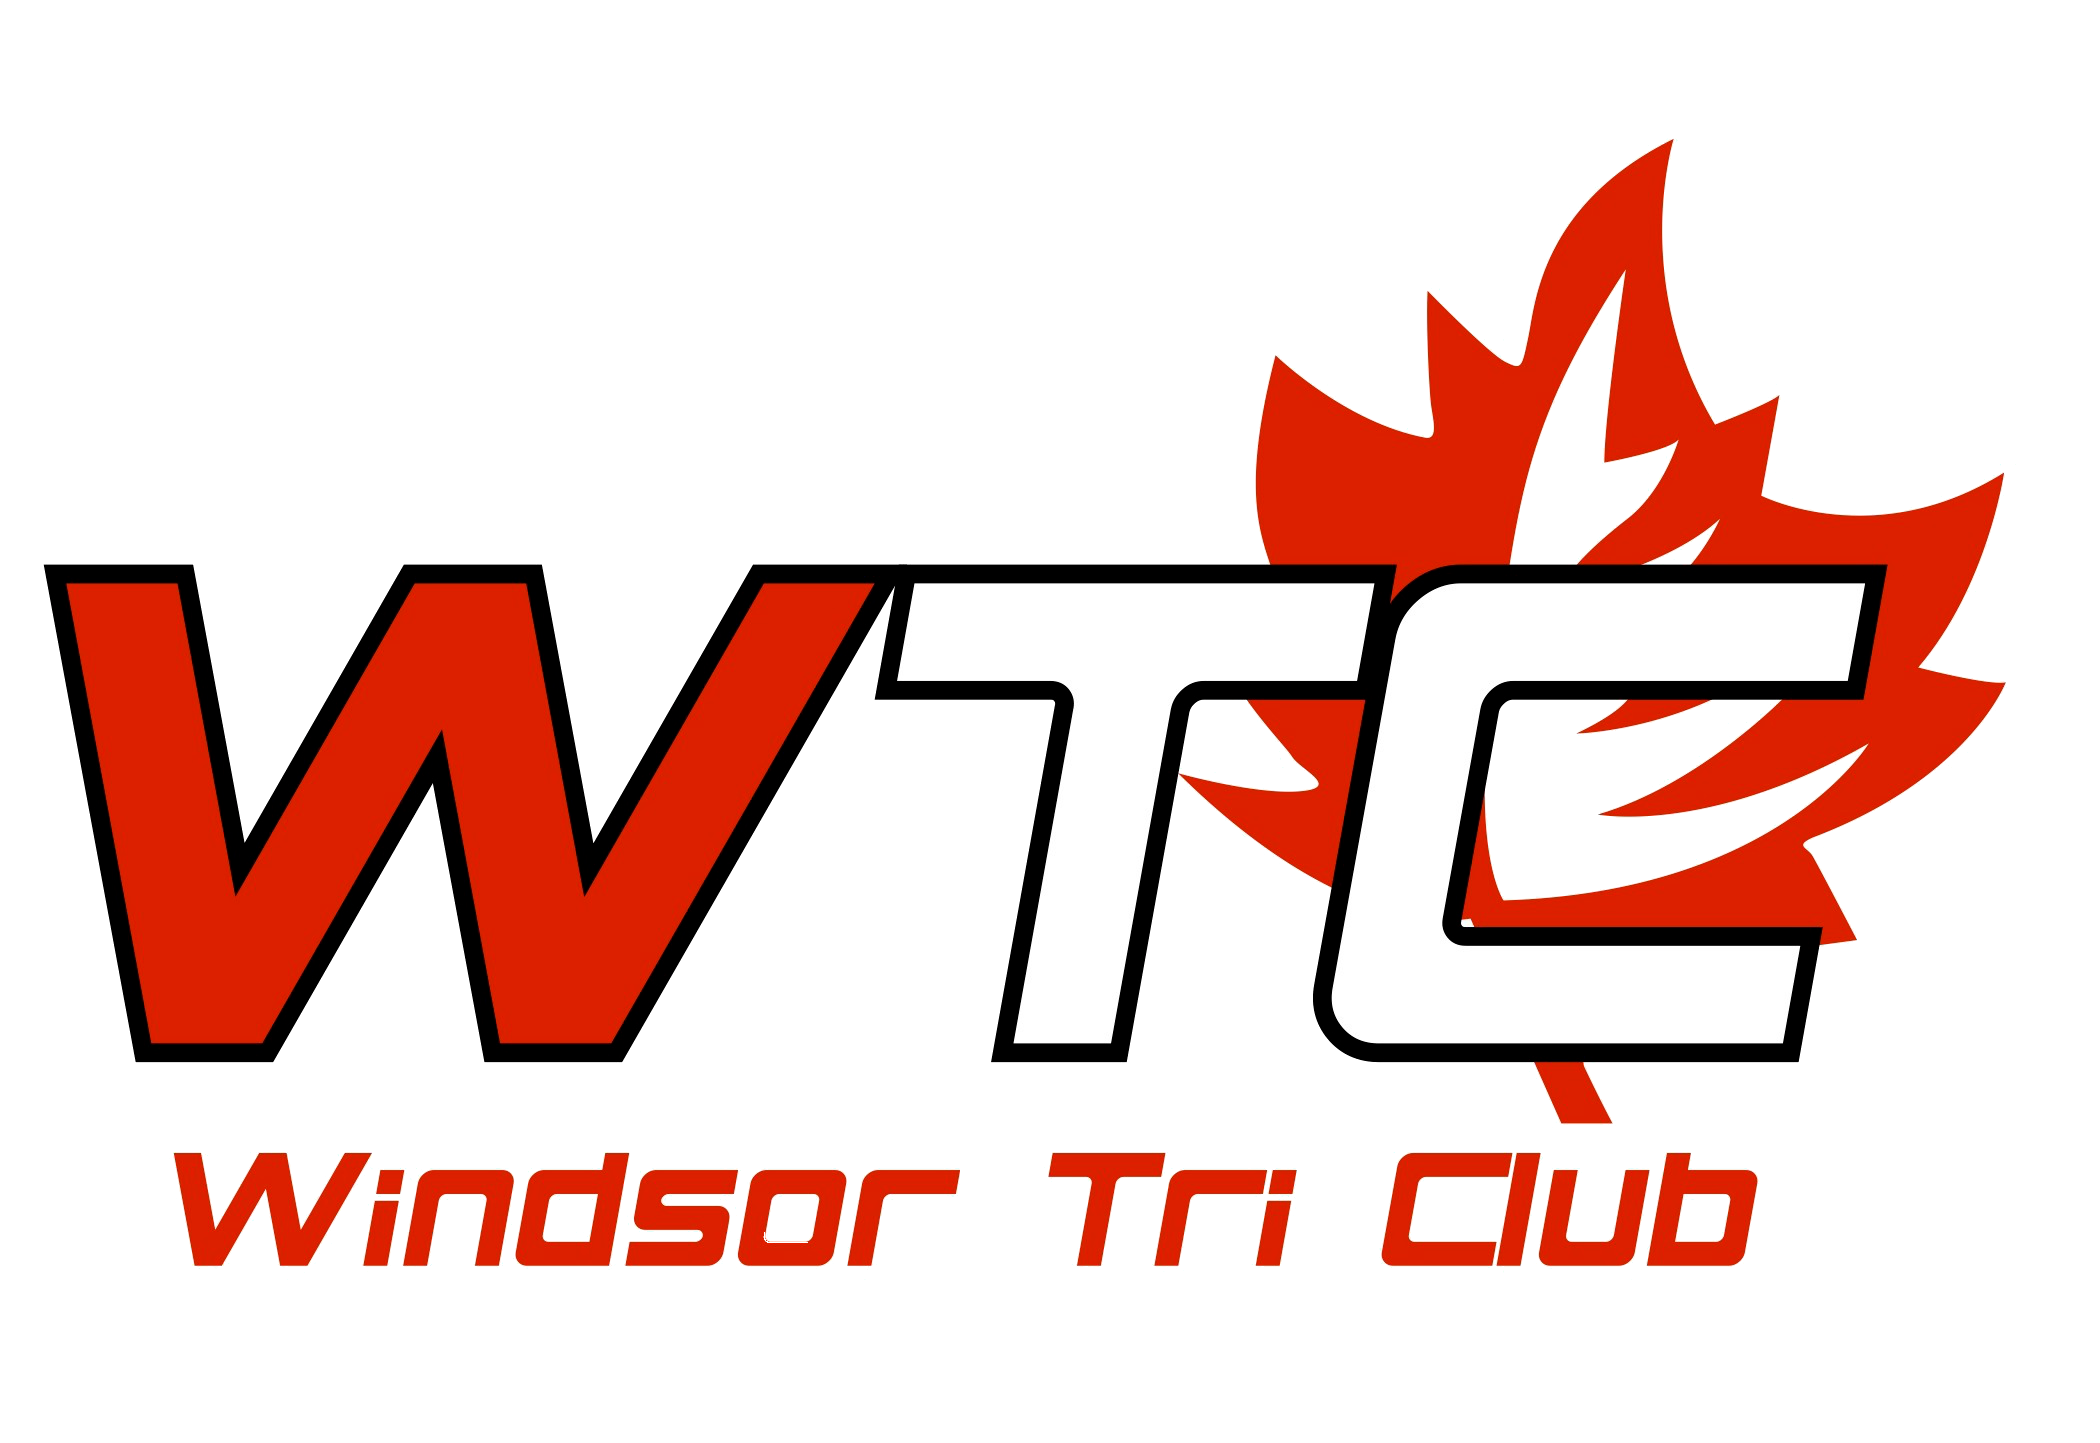 Windsor Triclub logo